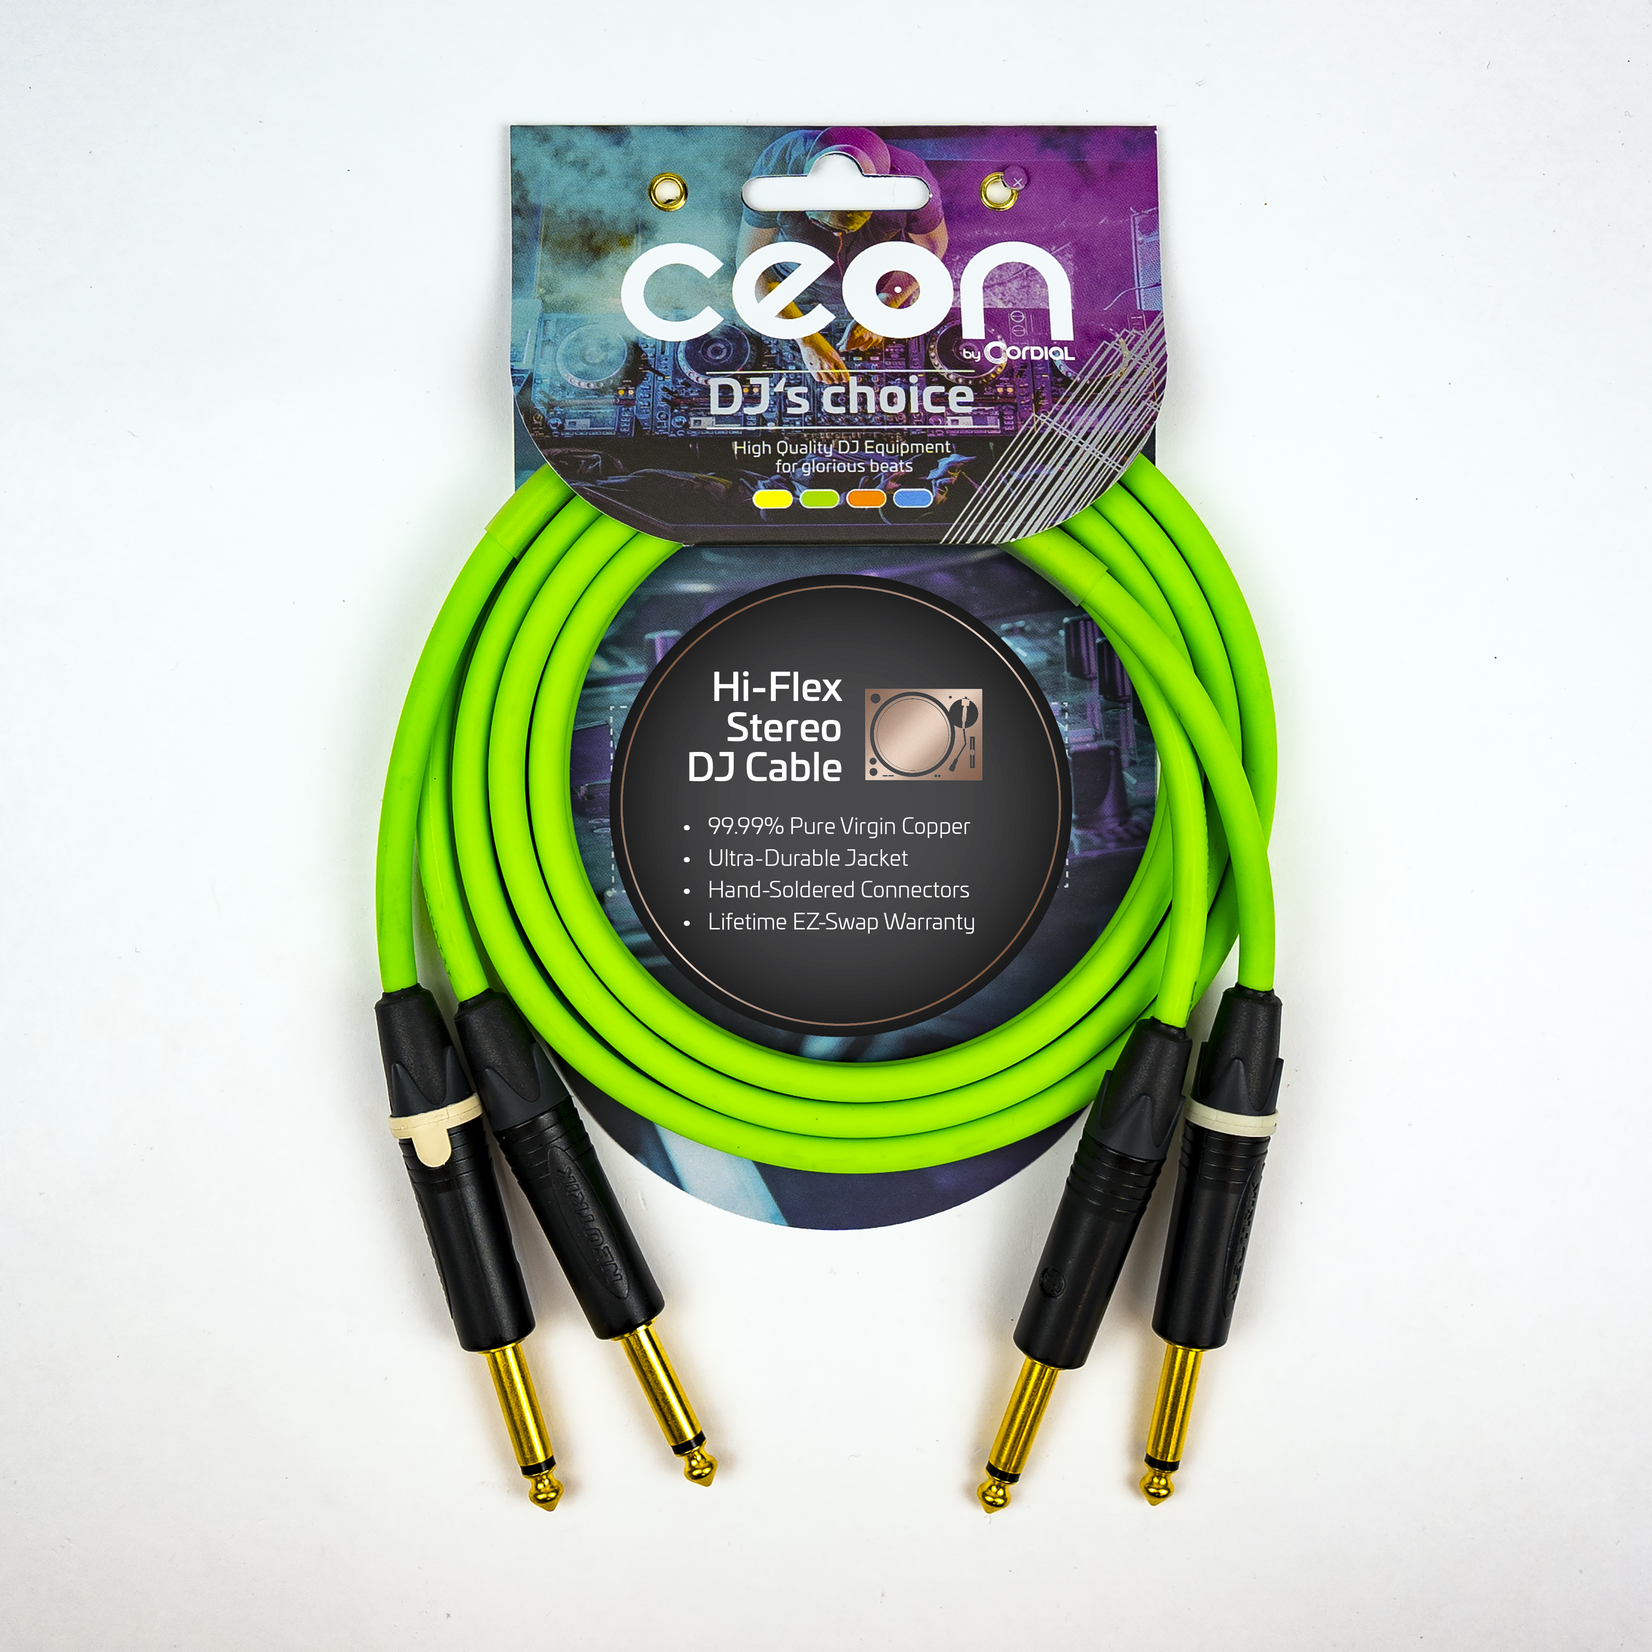 """Cordial Cables Cordial Cables Premium DJ Dual/Mono (Black Light) Cable, Ceon Series - Hi-Flex DJ's Choice Stereo 1/4"""" TS to 1/4"""" TS 5-Foot Cable: Neon Green"""